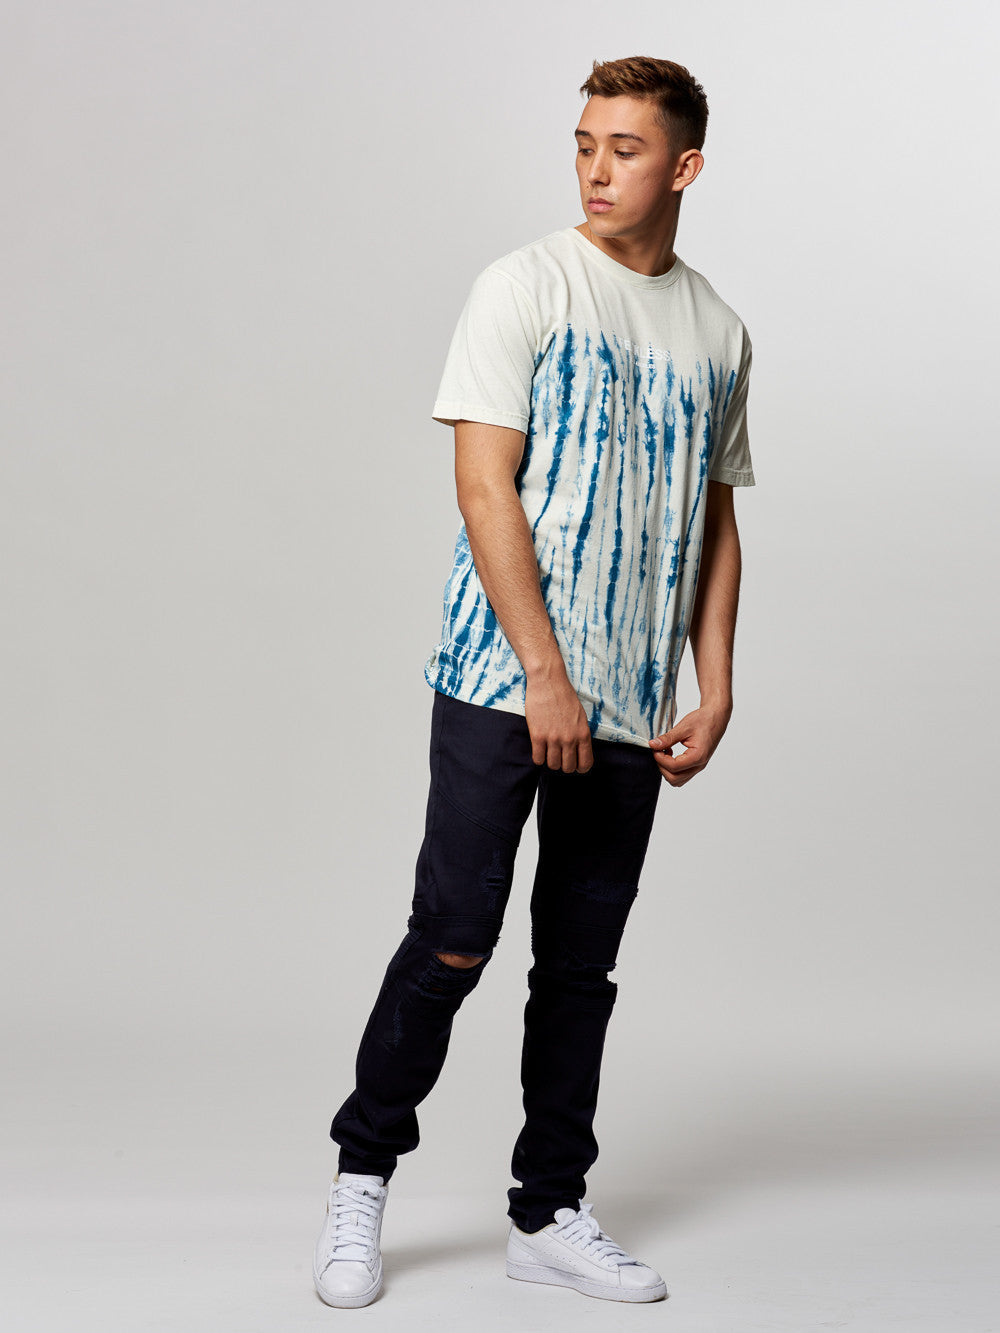 Young and Reckless Mens - Tees - Graphic Tee Classic Tee- Glacier Navy/White